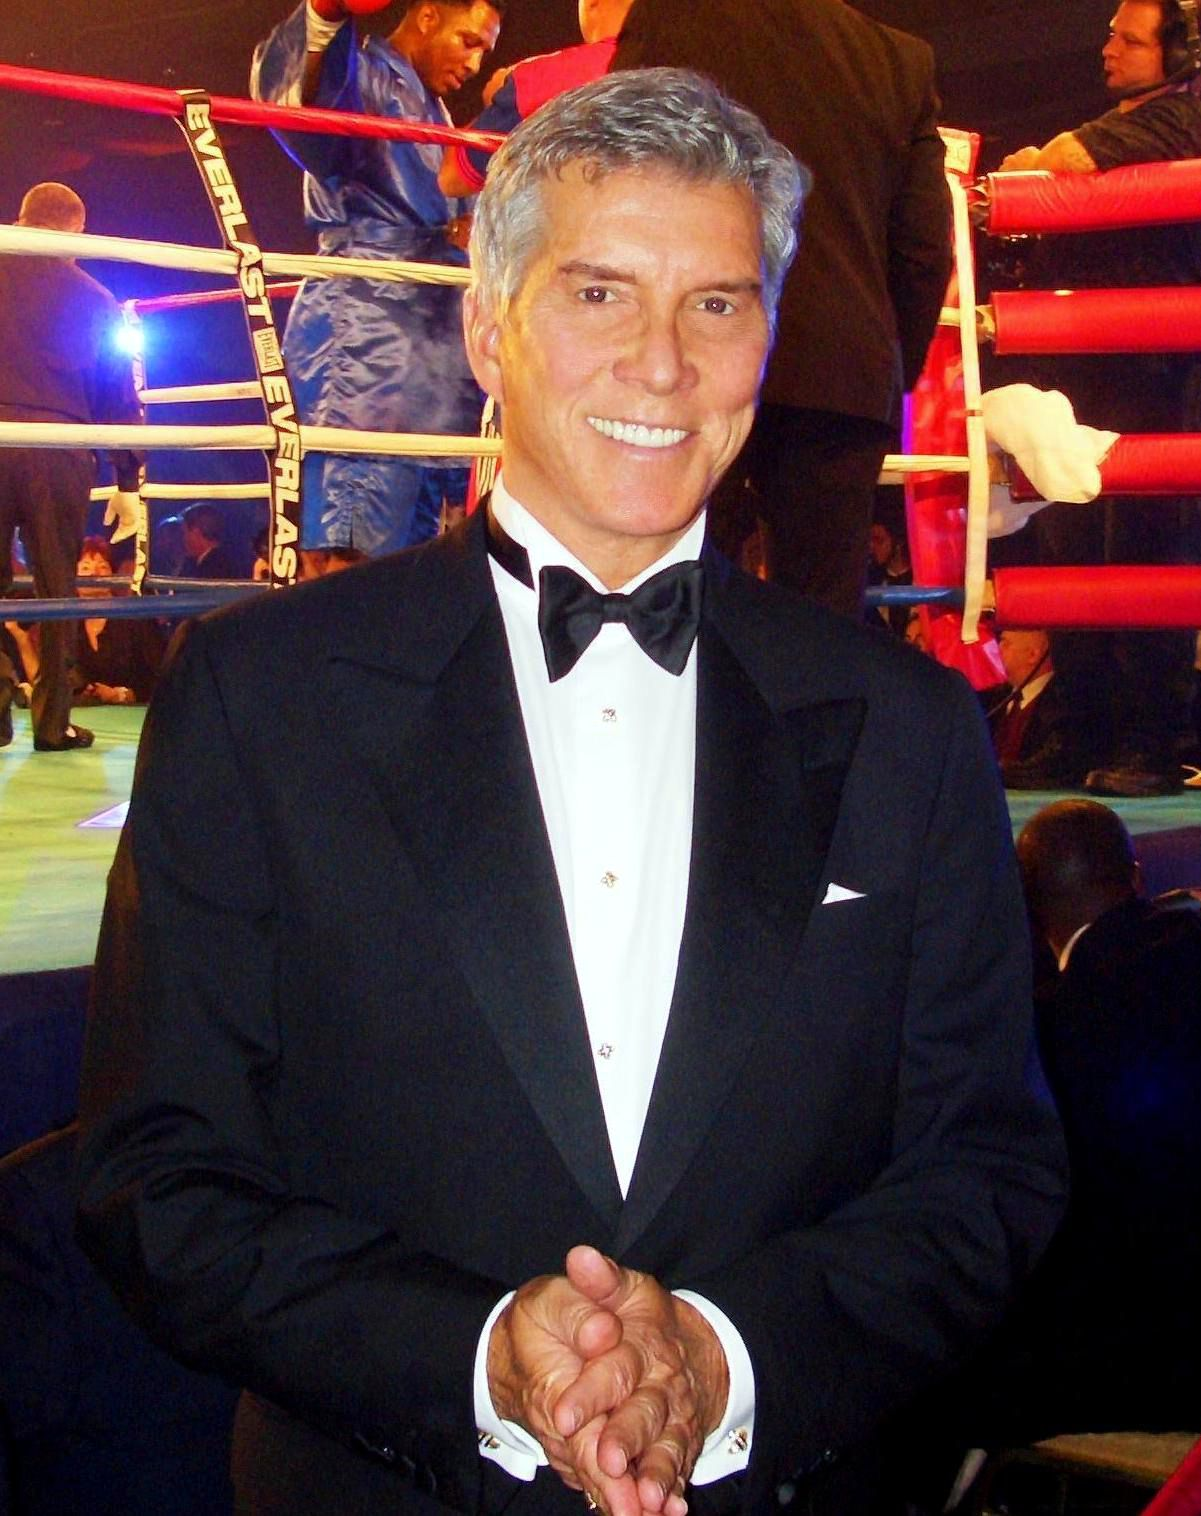 Professional ring announcer Michael Buffer made a guest appearance in the episode, in which he spoke his trademark phrase,